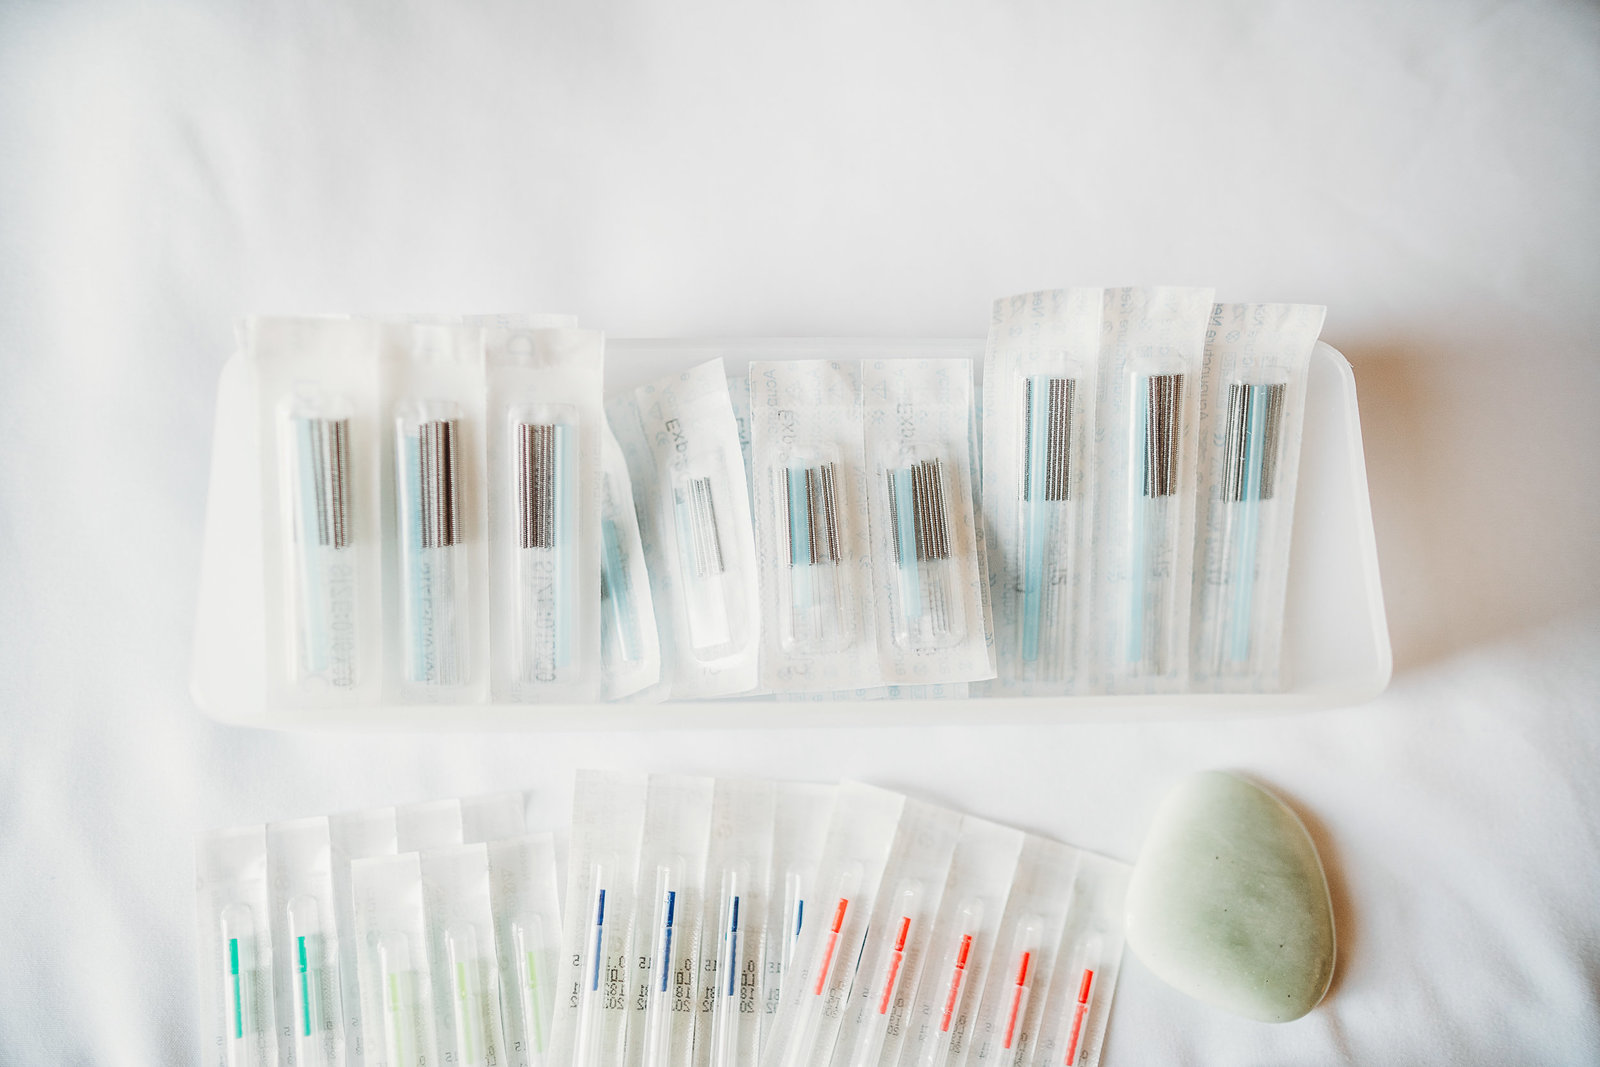 rainbow colored acupuncture needles laid out on a white sheet